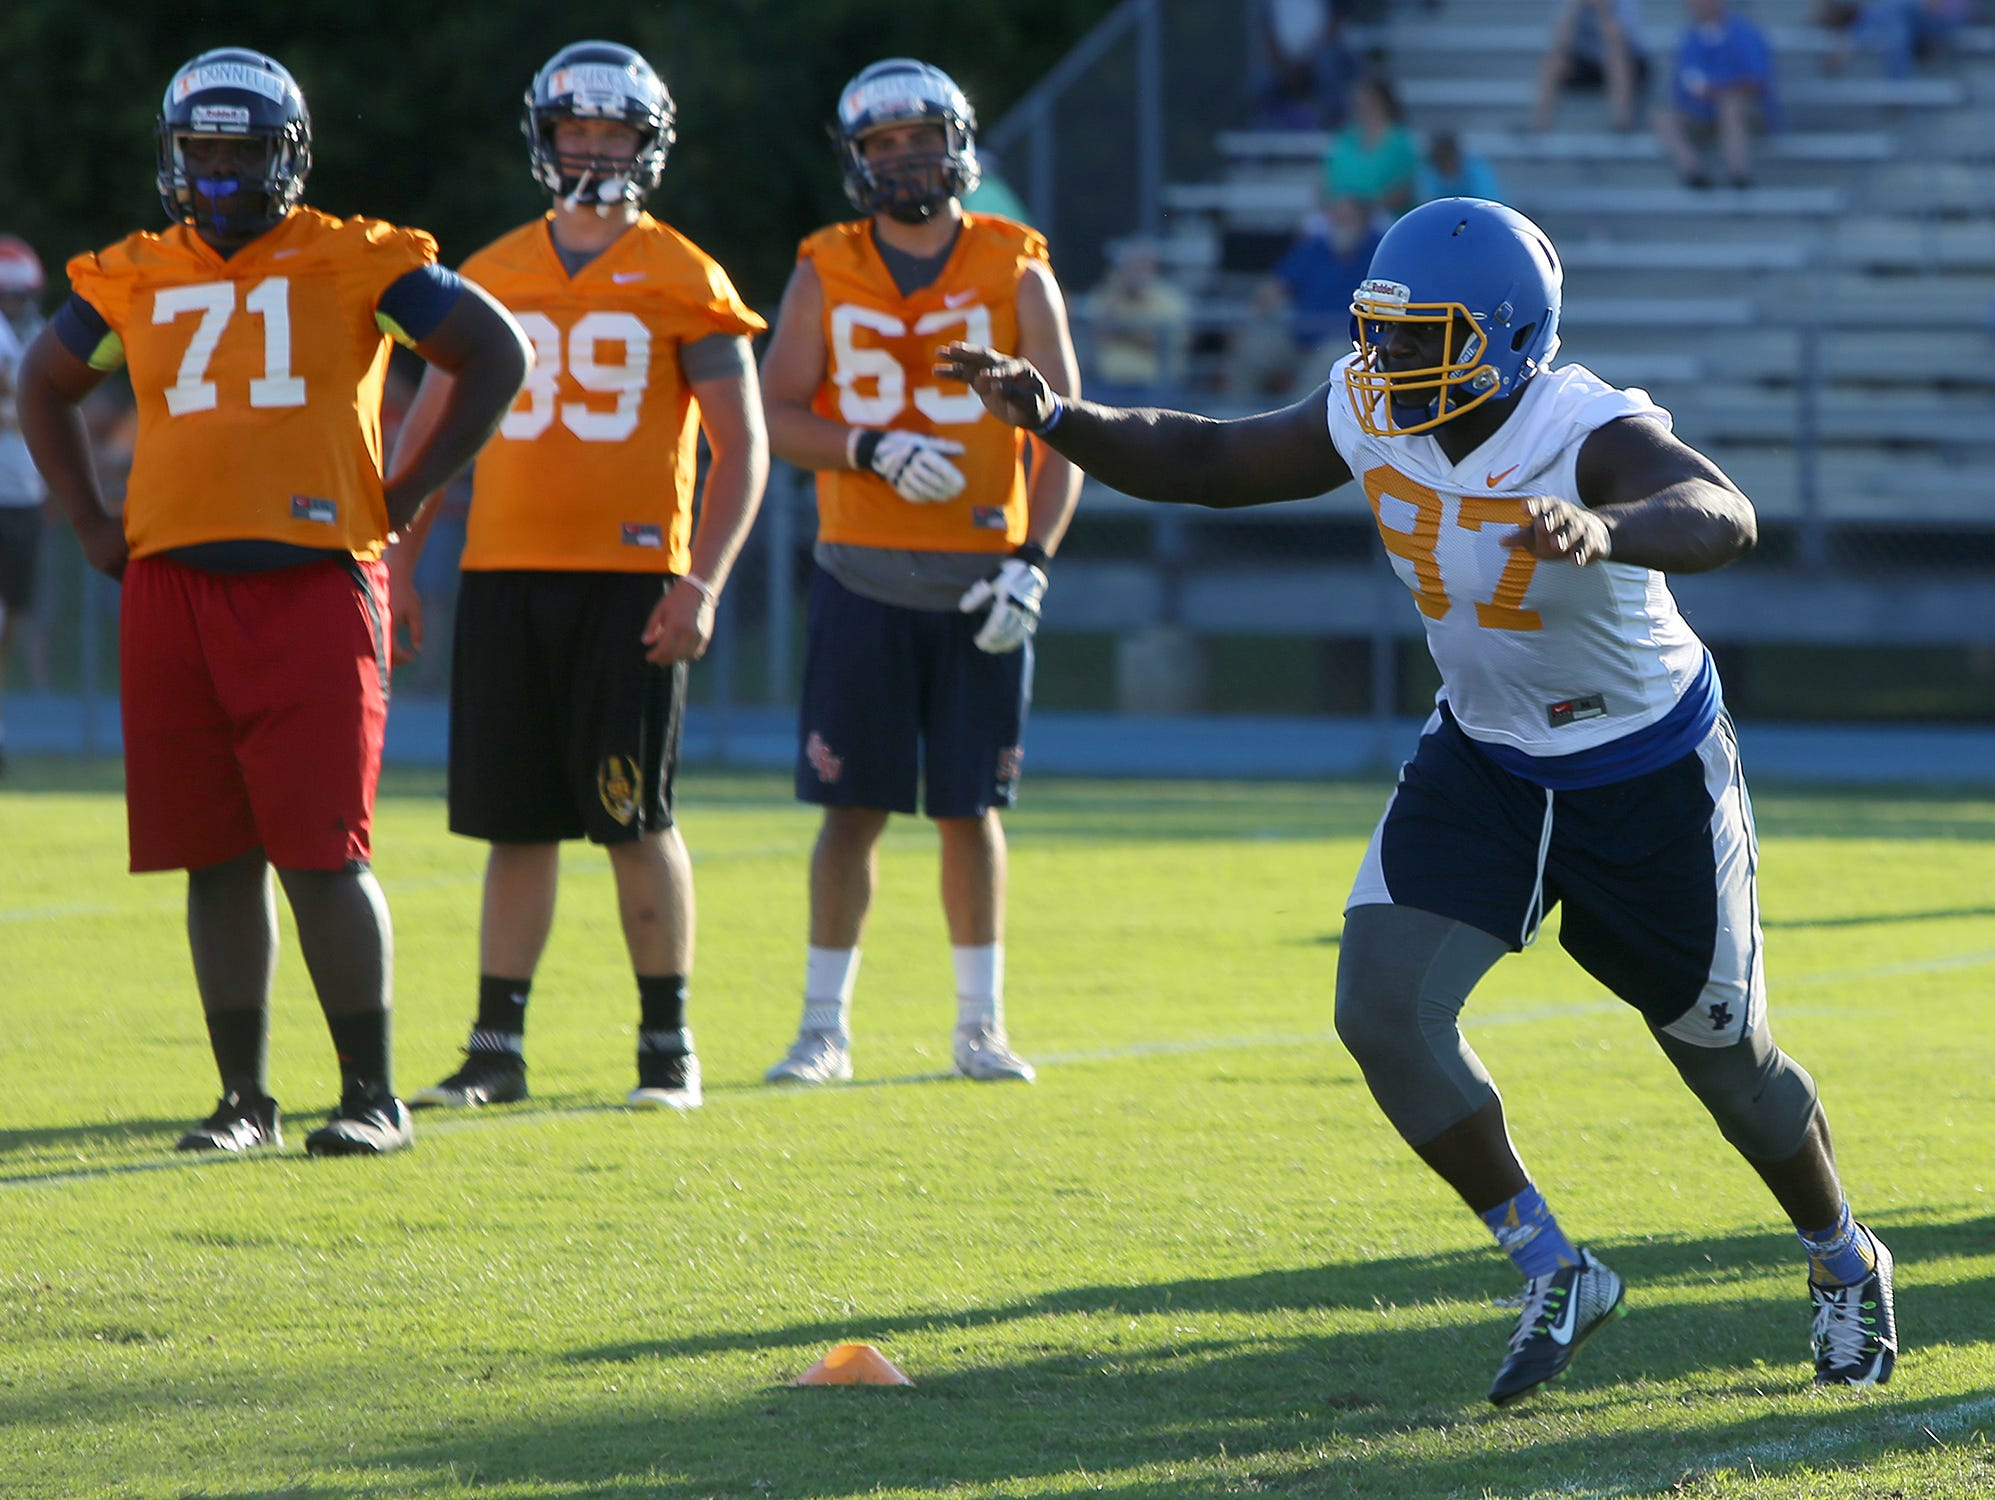 North Side High School defensive lineman Greg Emerson runs a drill during a University of Tennessee satellite lineman camp at University School of Jackson's Kirkland Field on Wednesday, June 8, 2016.